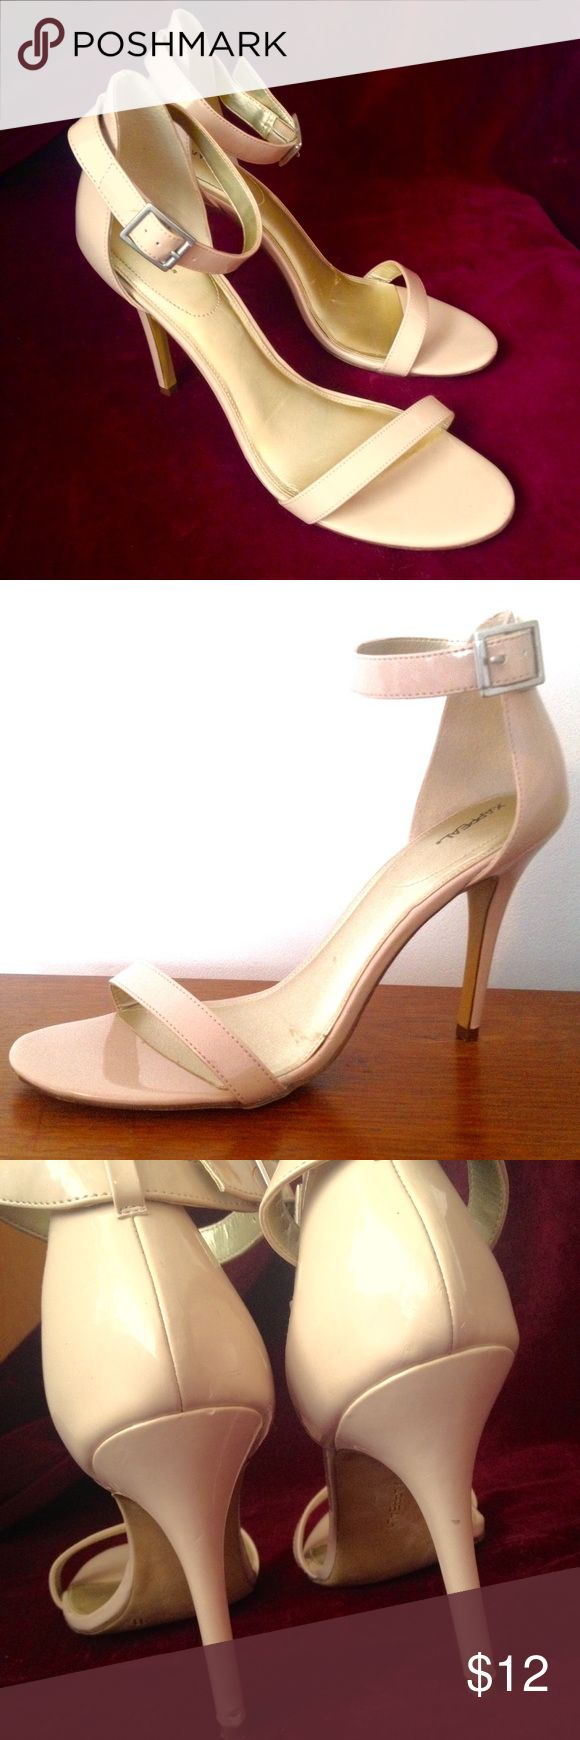 1000  ideas about Neutral Strappy Heels on Pinterest | Navy ...